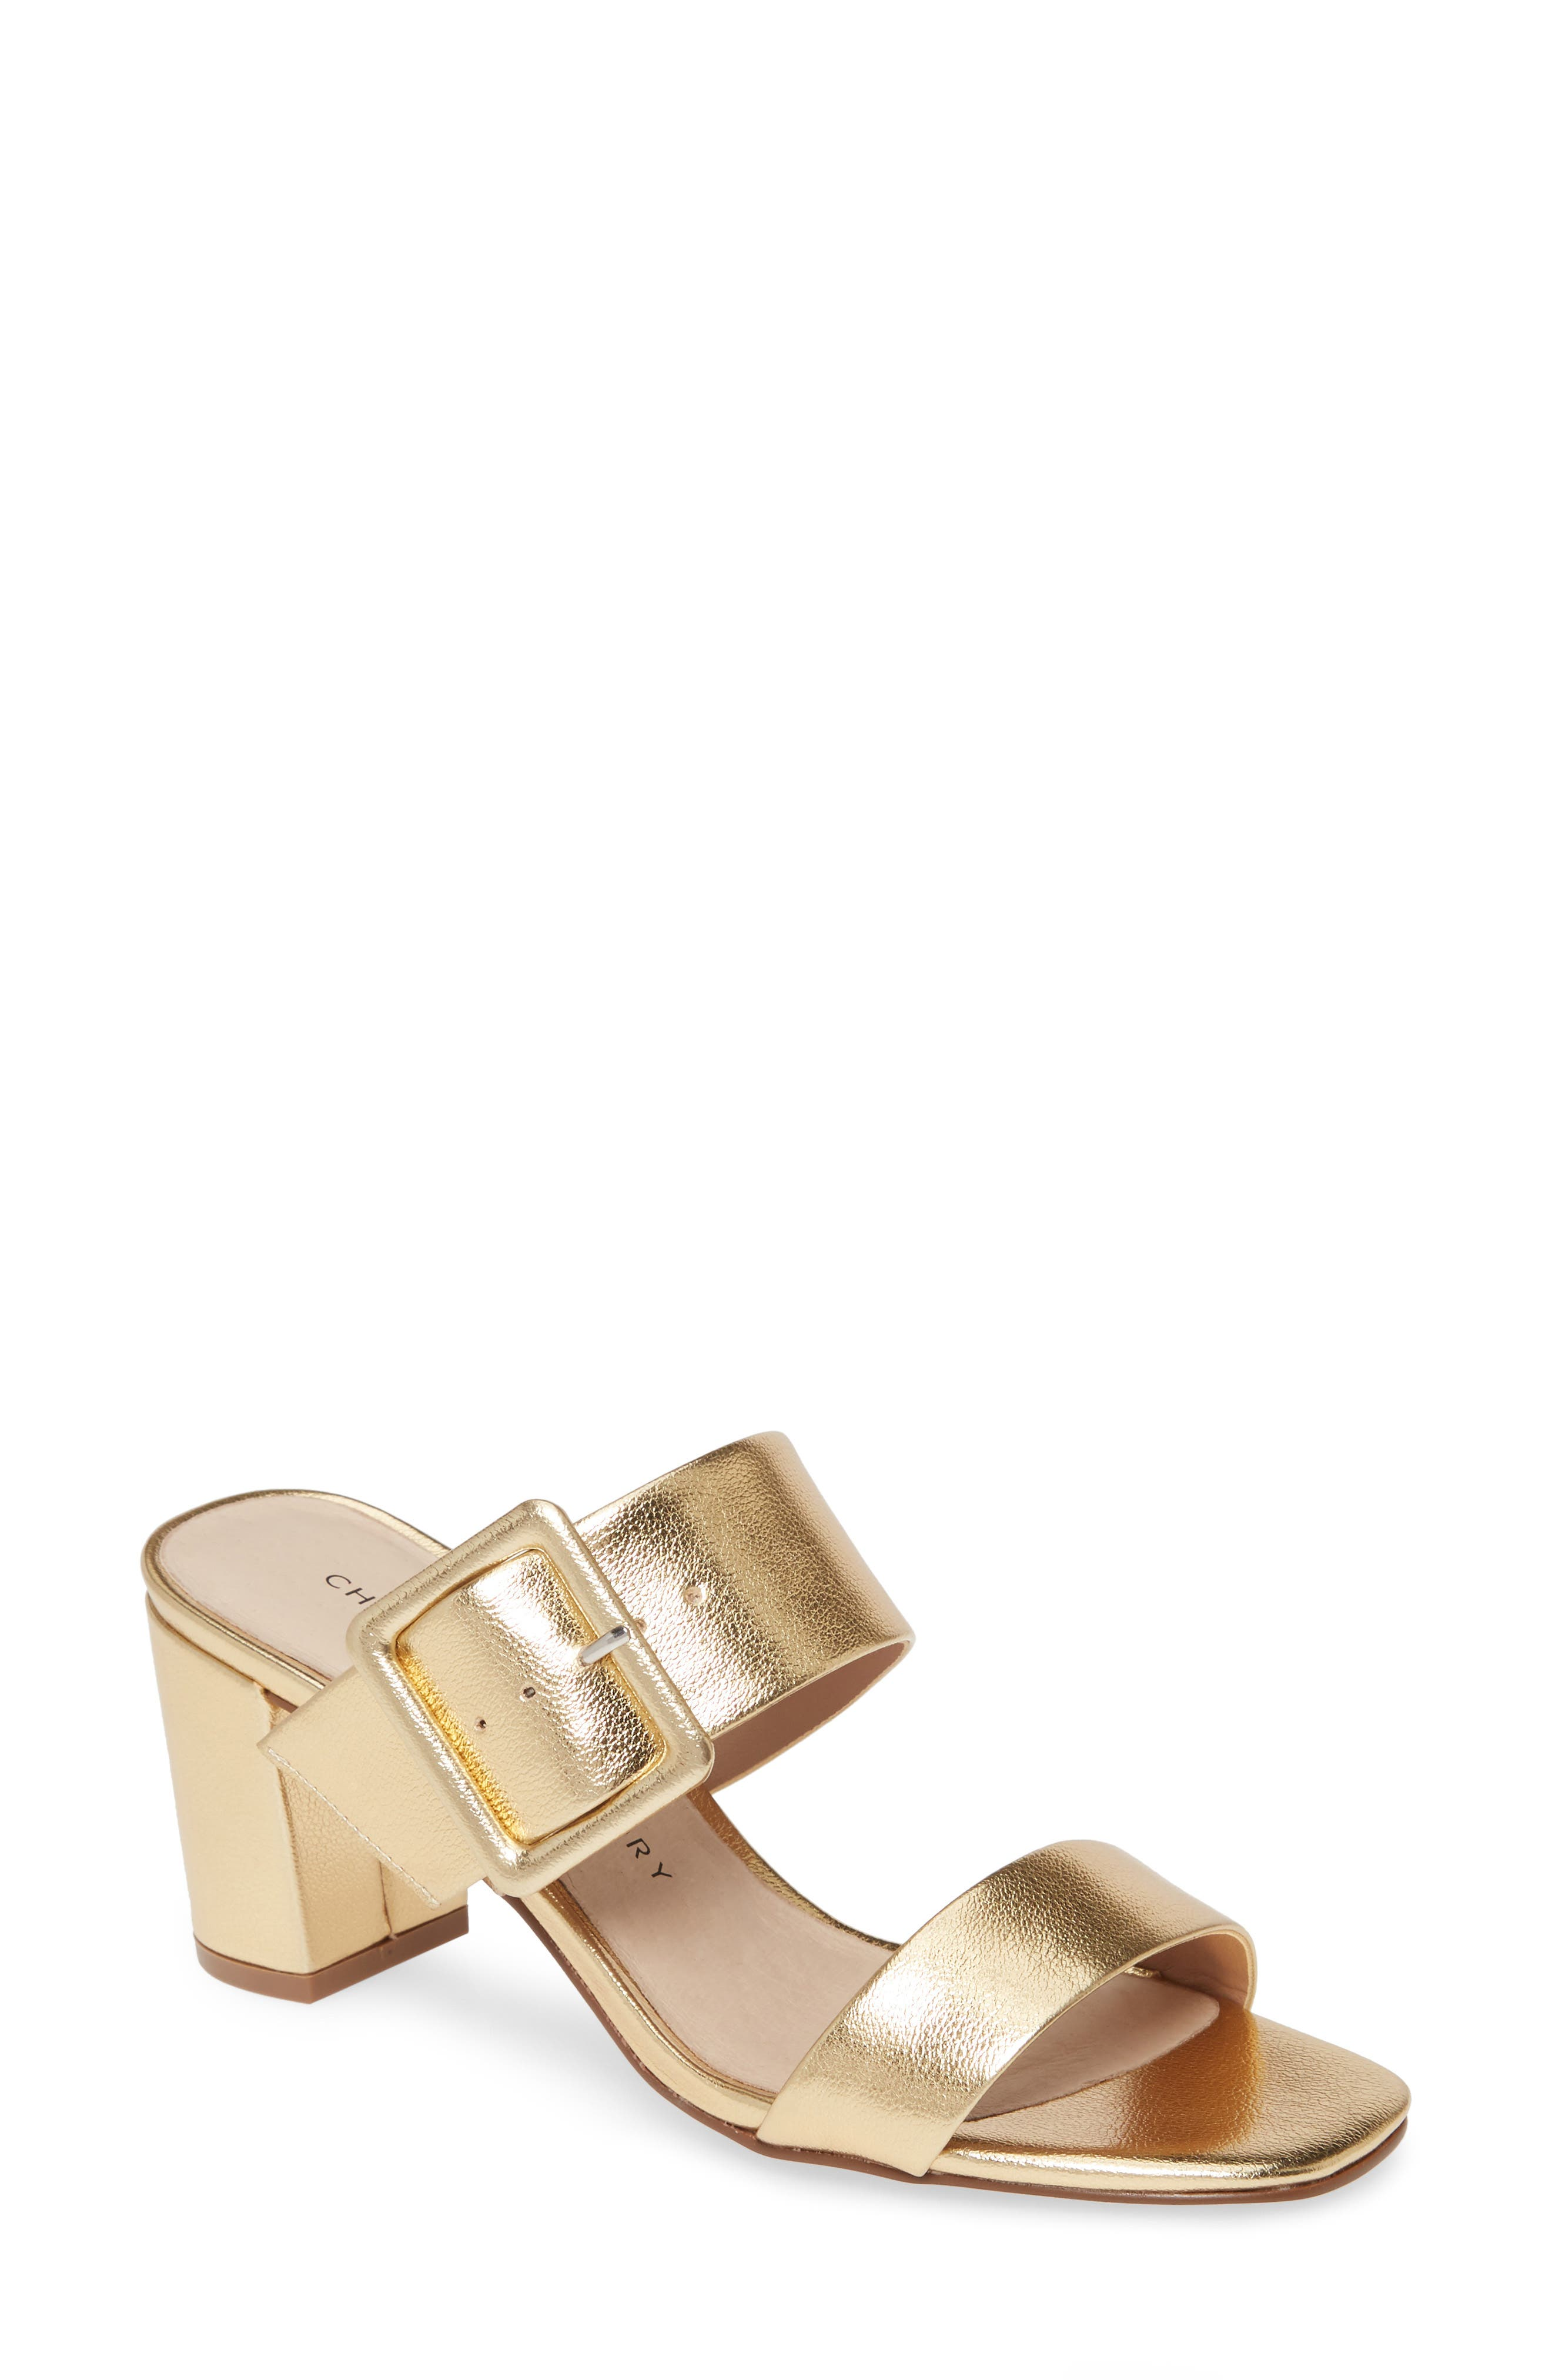 Wide straps and a bold buckle amplify the modern appeal of this block-heel sandal. Style Name: Chinese Laundry Yippy Block Heel Sandal (Women). Style Number: 5798547. Available in stores.